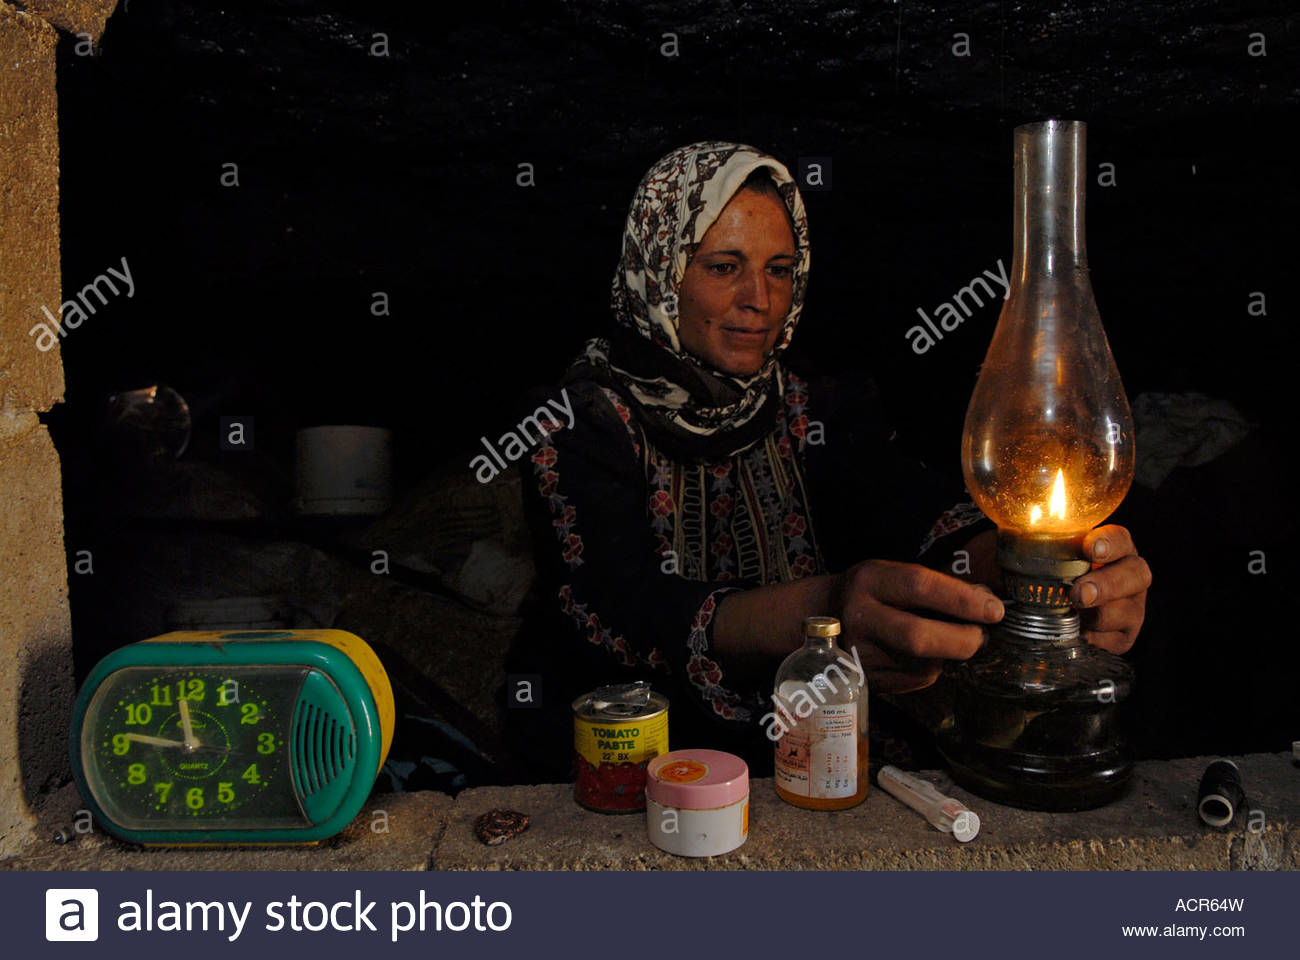 A Palestinian woman lighting a kerosene lamp in an inhabited cave in Al Mufaqarah village located in South Hebron - Stock Image